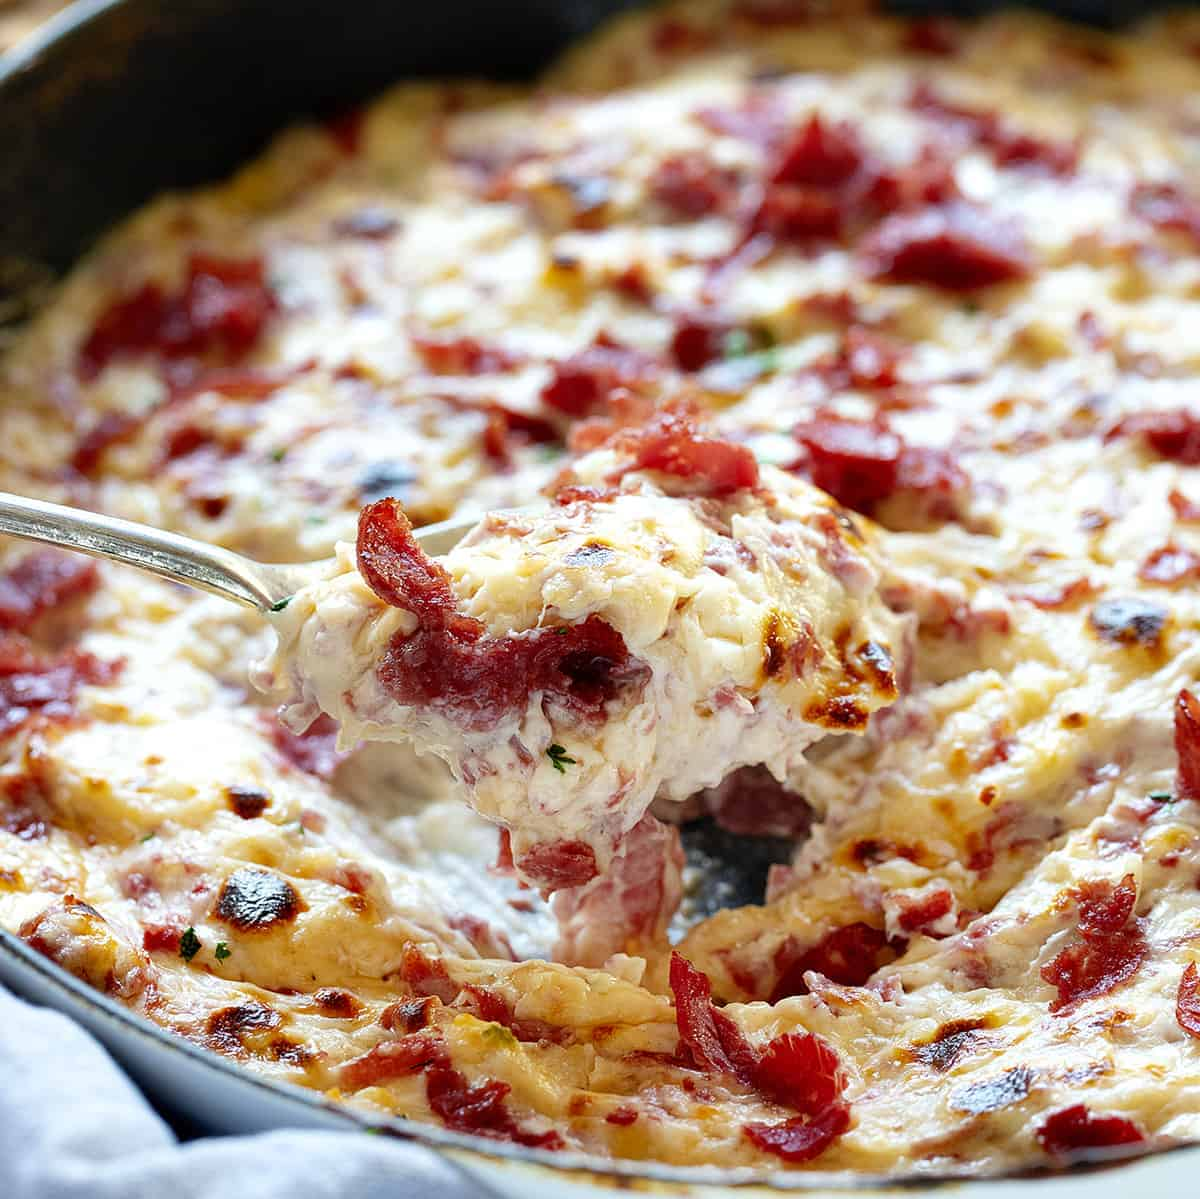 Spoonful of Reuben Dip